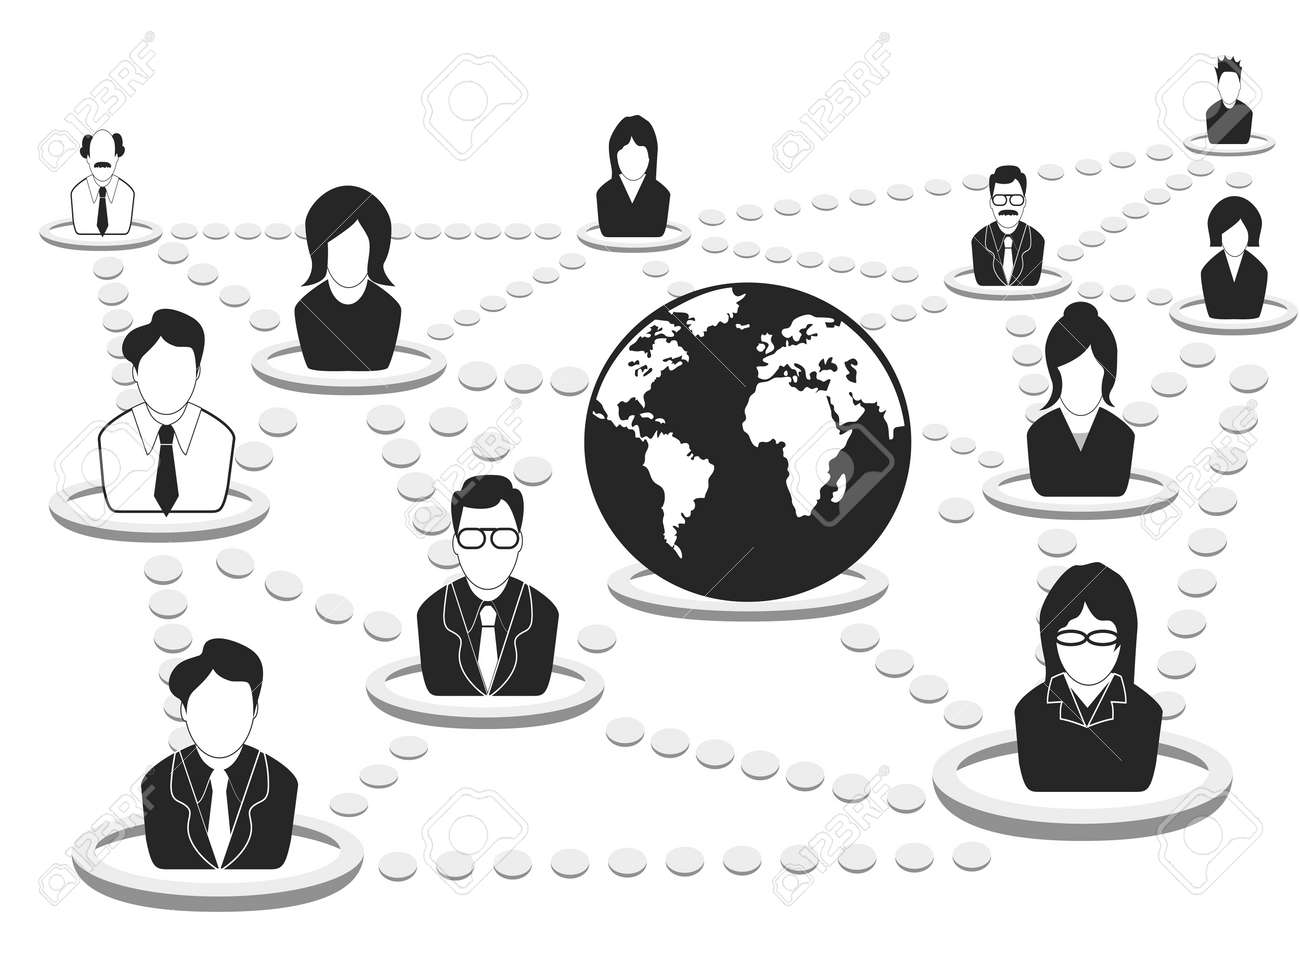 the background of business people networking Stock Vector - 14301245